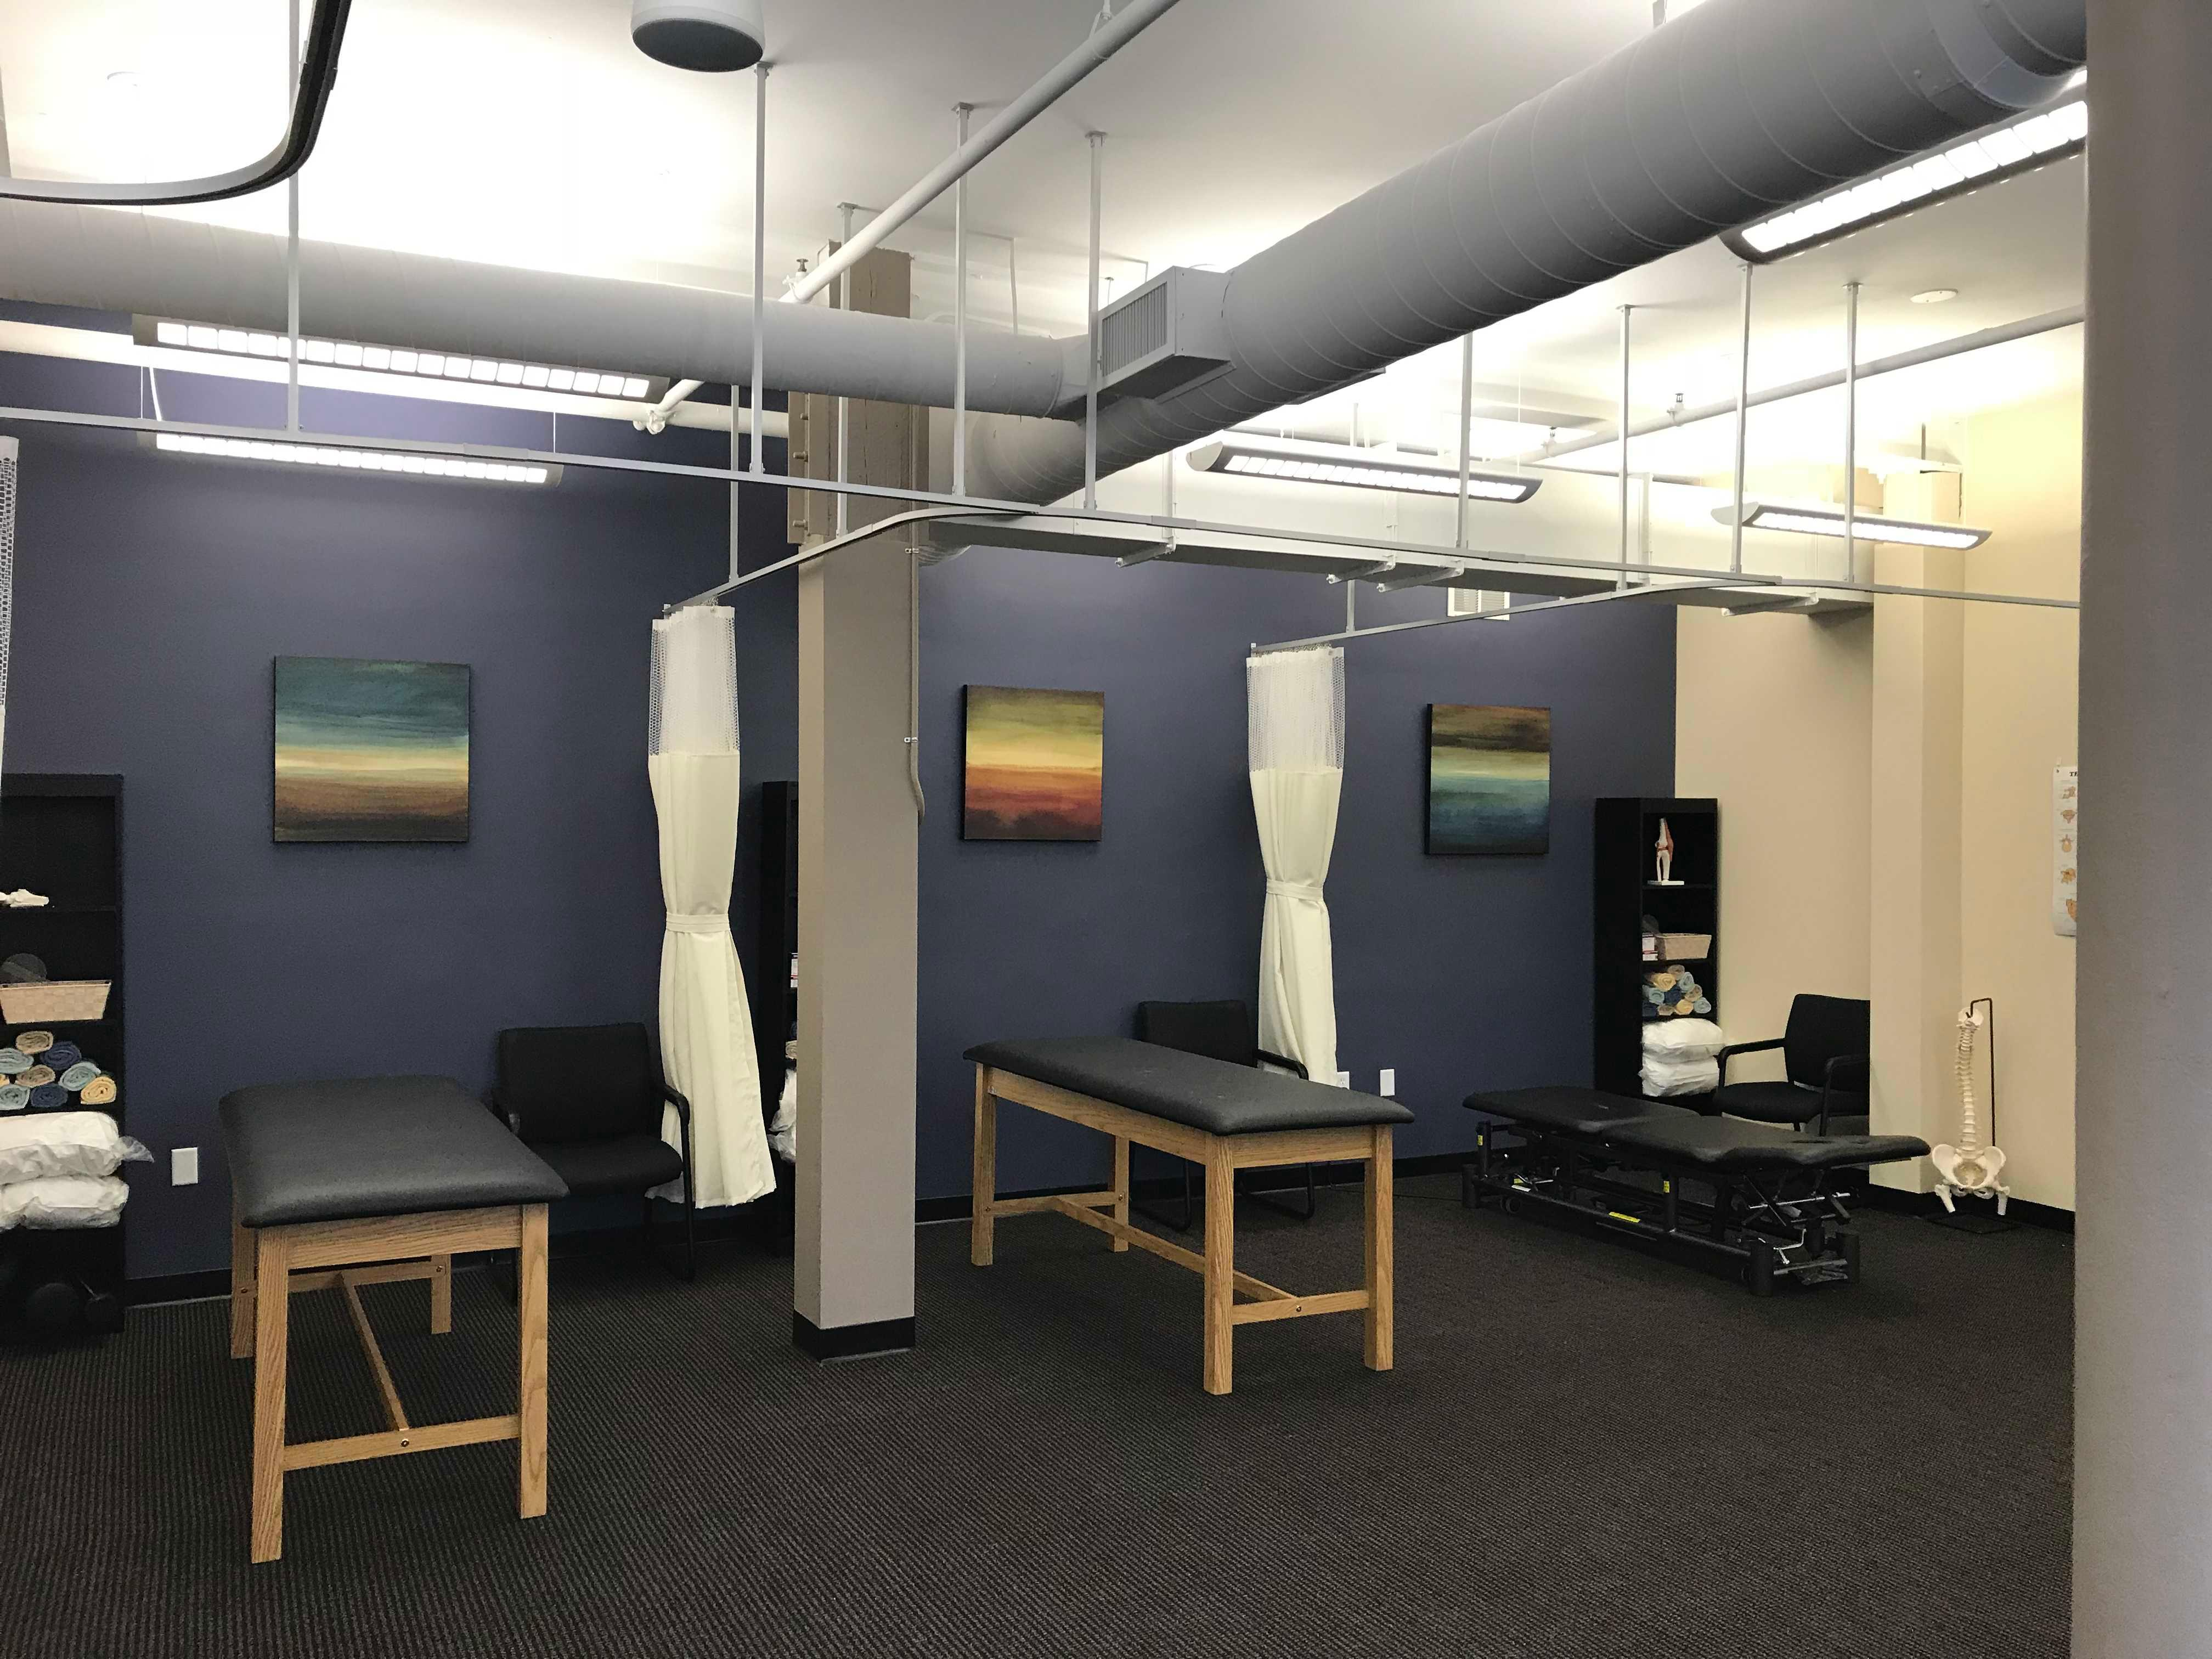 Professional Physical Therapy image 6